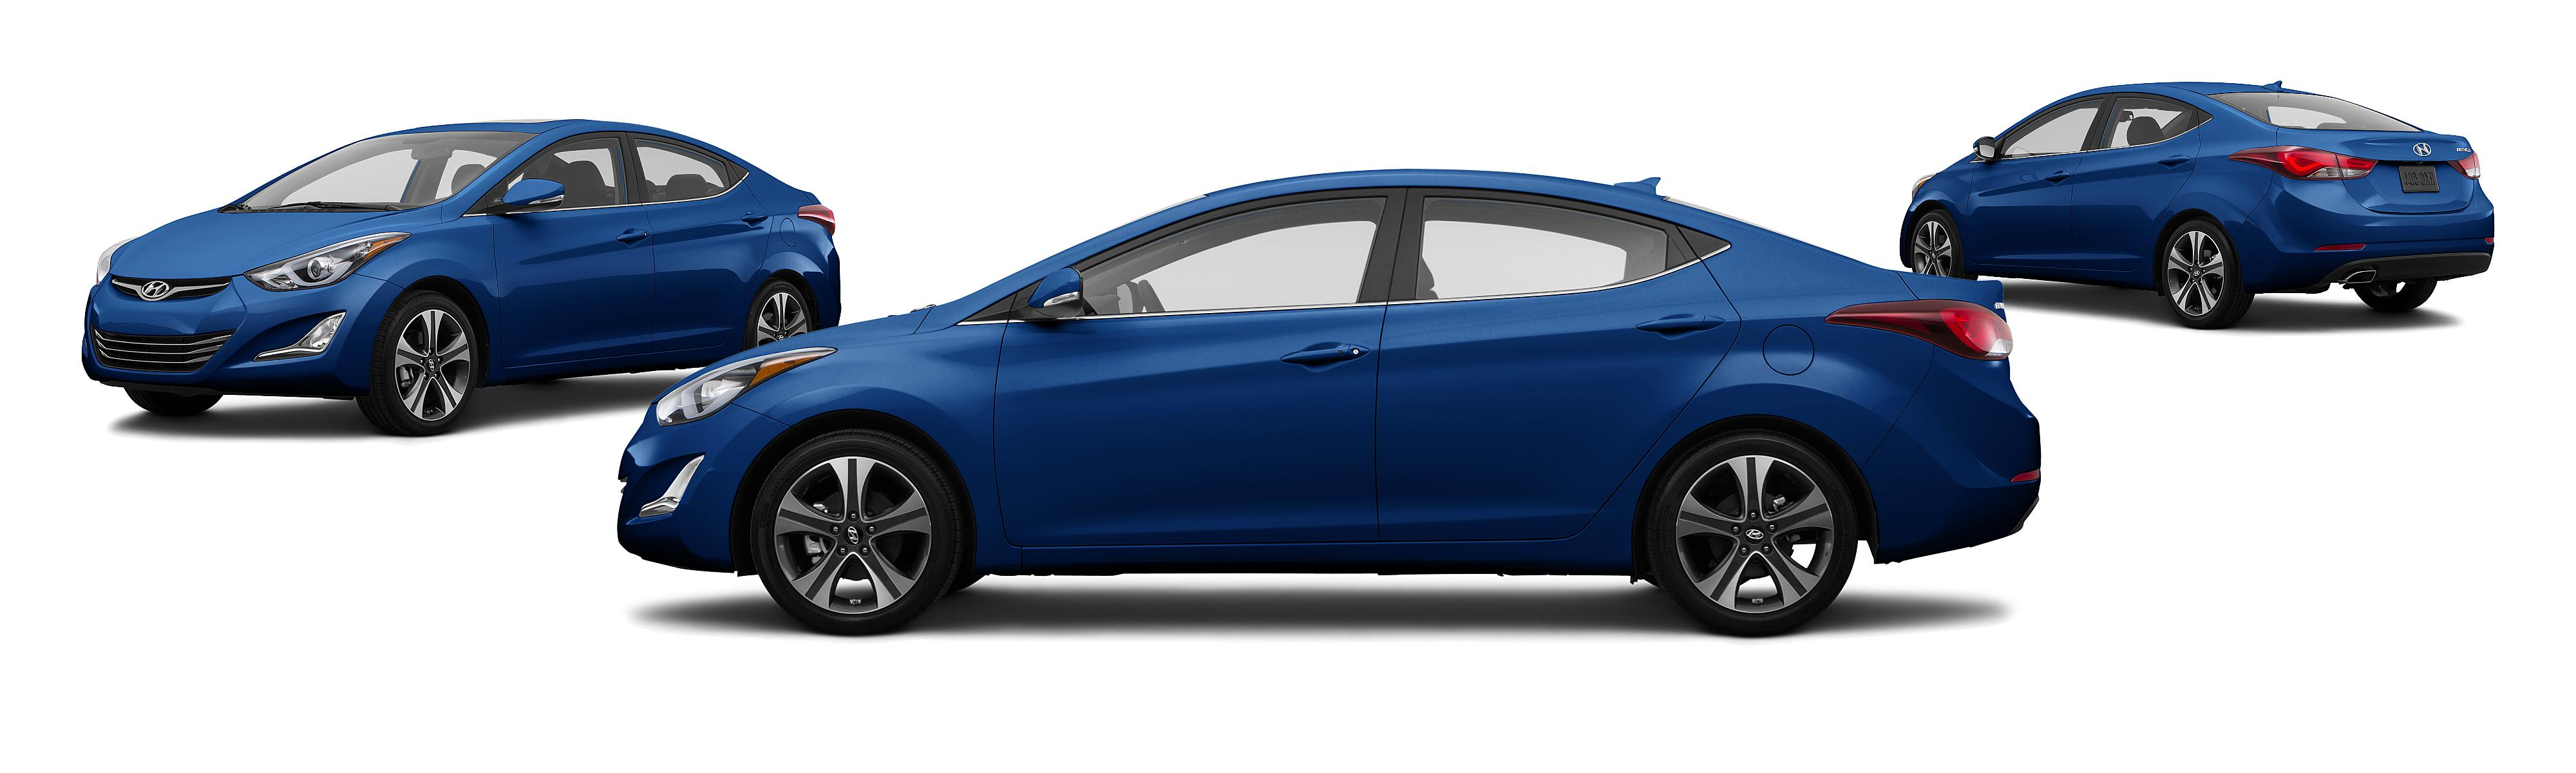 tech sedan elantra pricing sport updates brings and hyundai led photos features classy